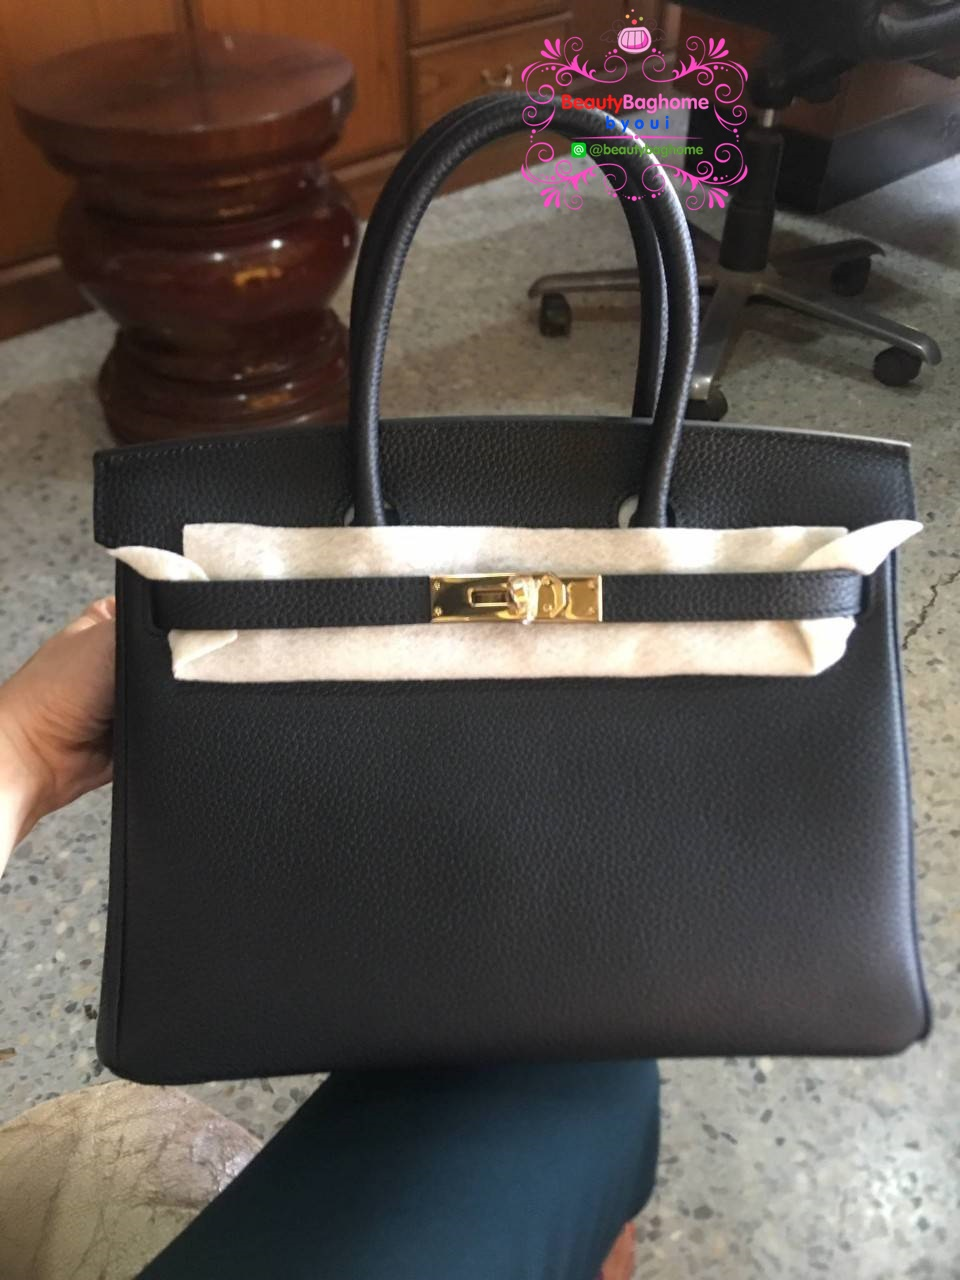 Hermes birkin 30 togo leather  สีดำ  งานHiend 1:1